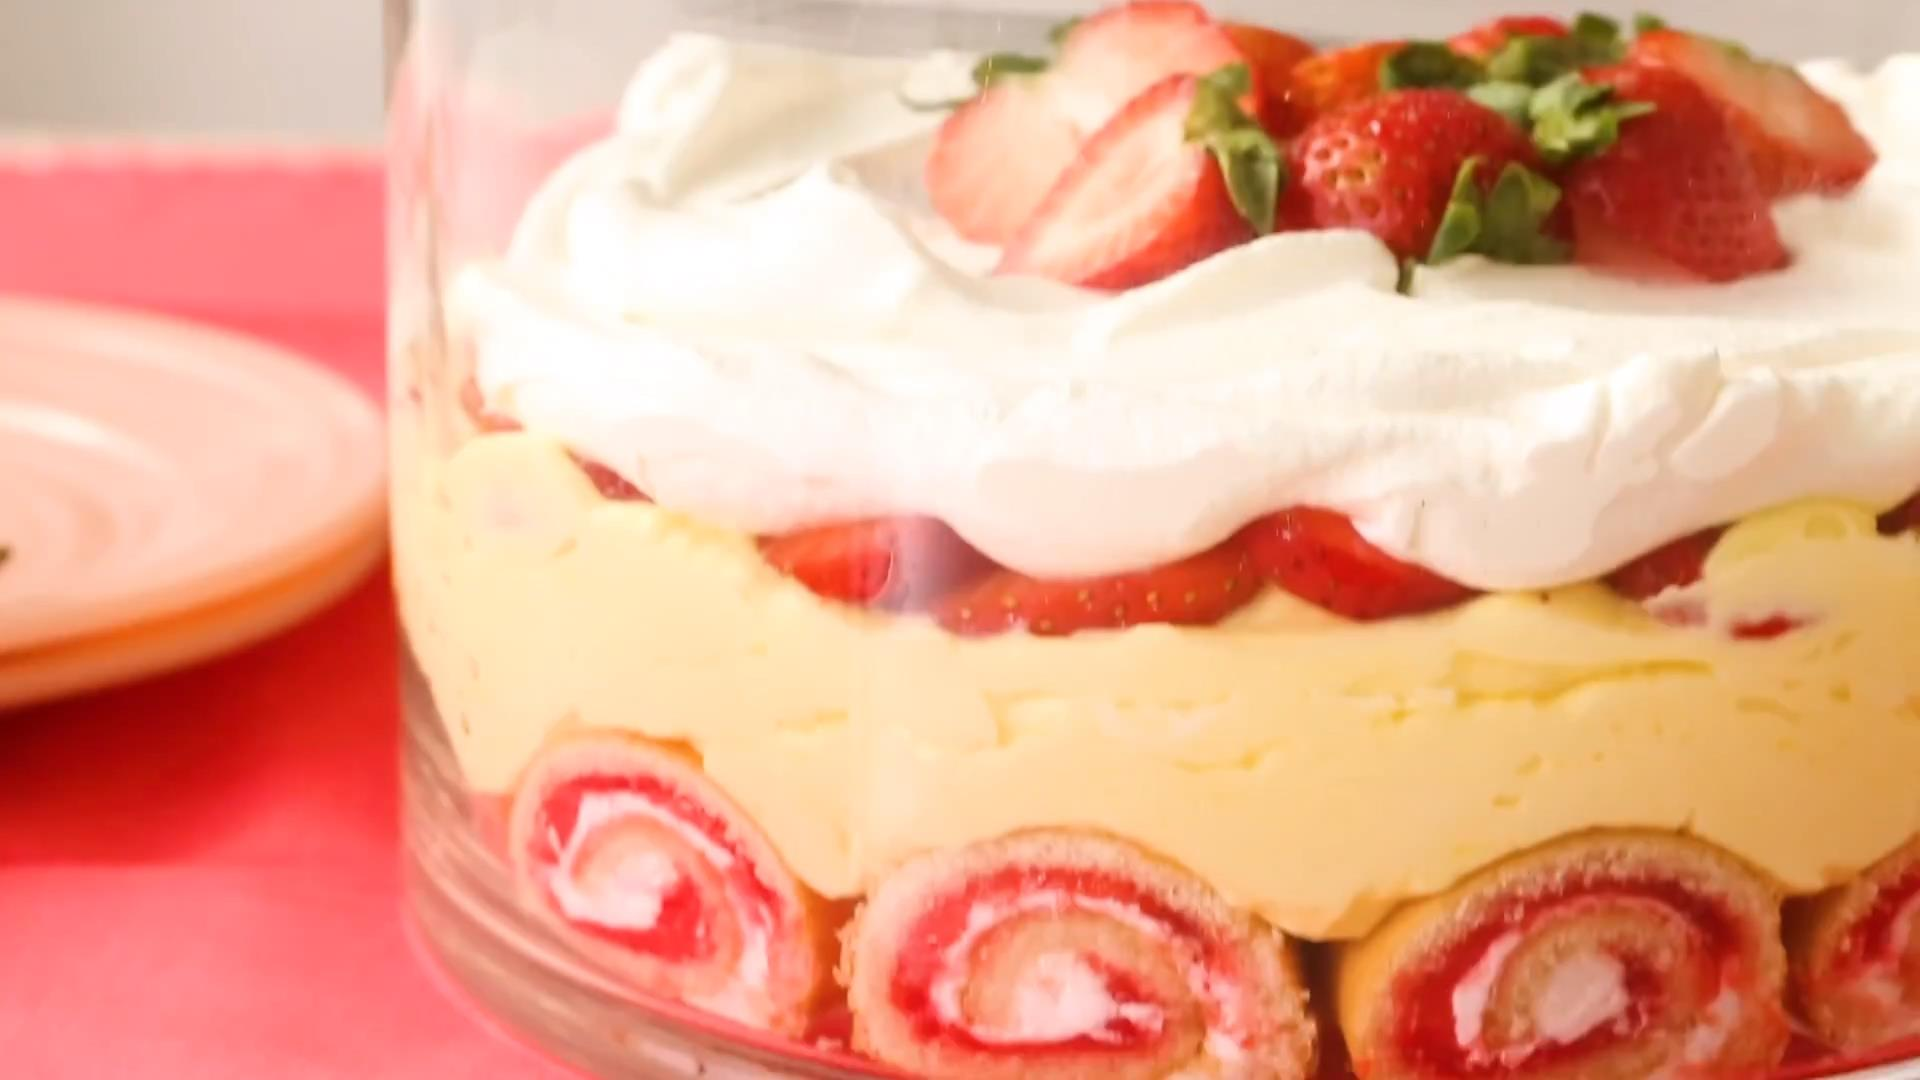 closeup of a glass bowl filled with layers of jelly roll, vanilla pudding, strawberries, and whipped topping